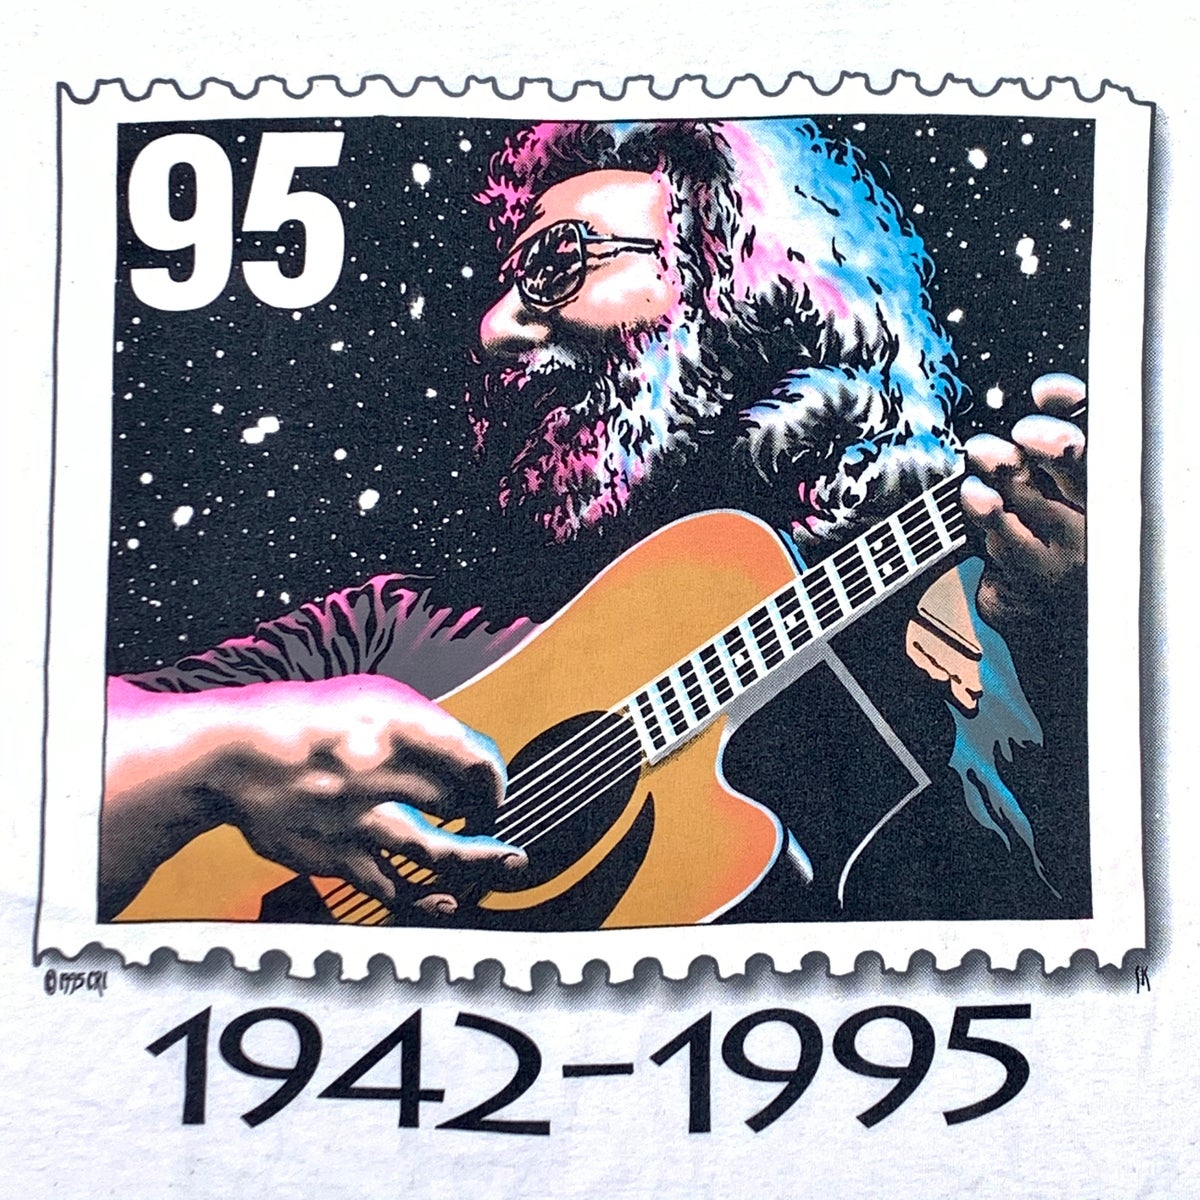 Original Vintage Jerry Garcia 1942-1995 Stamp Tee!! XL!